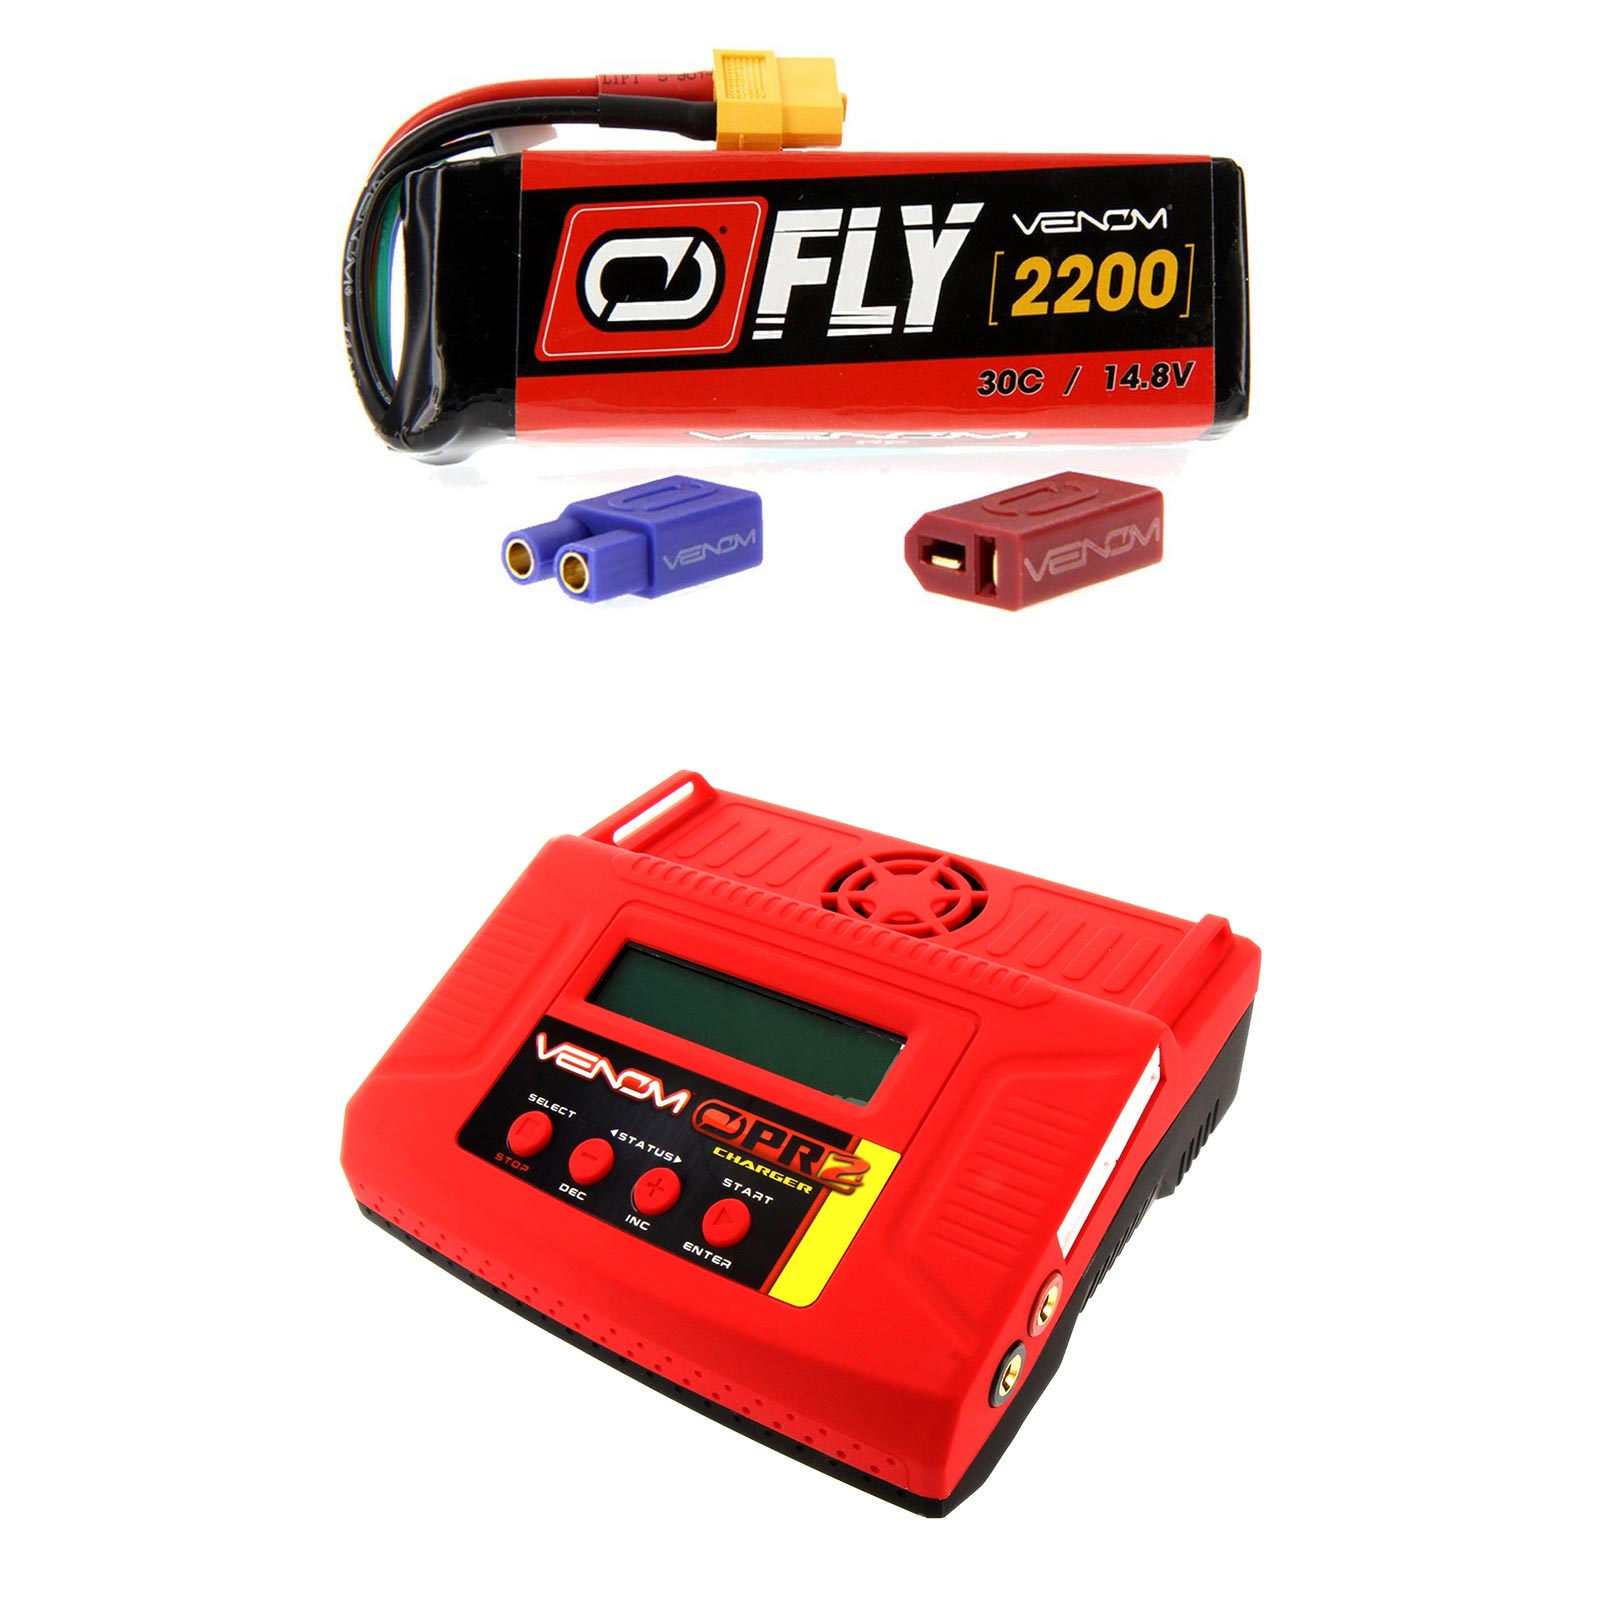 Venom Fly 30C 4S 2200mAh 14.8V LiPo Battery with UNI 2.0 Plug and Venom Pro 2 LiPo Battery & NiMH Battery Charger Money... by Venom